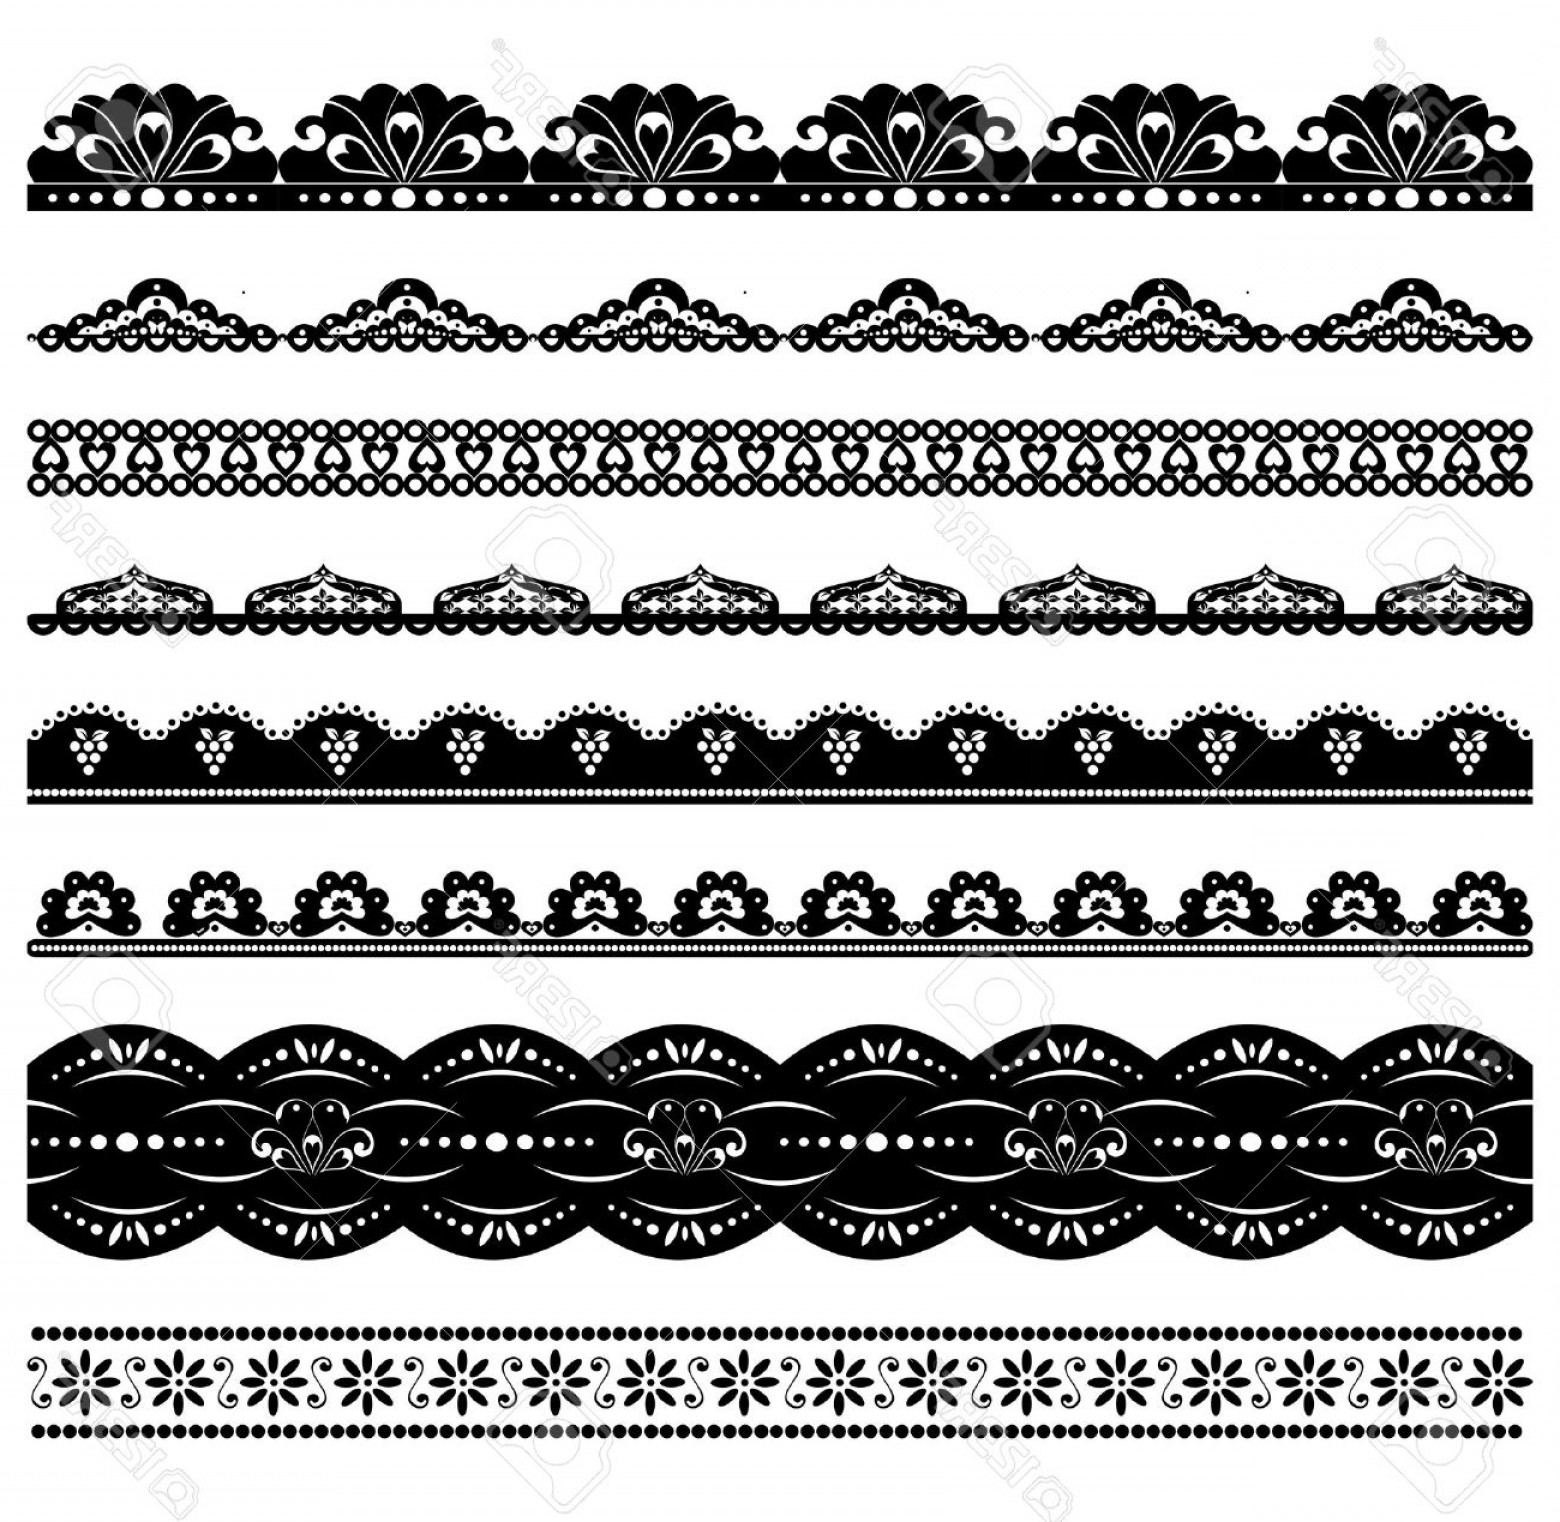 1560x1522 Photoset Of Vector Scalloped Borders Shopatcloth